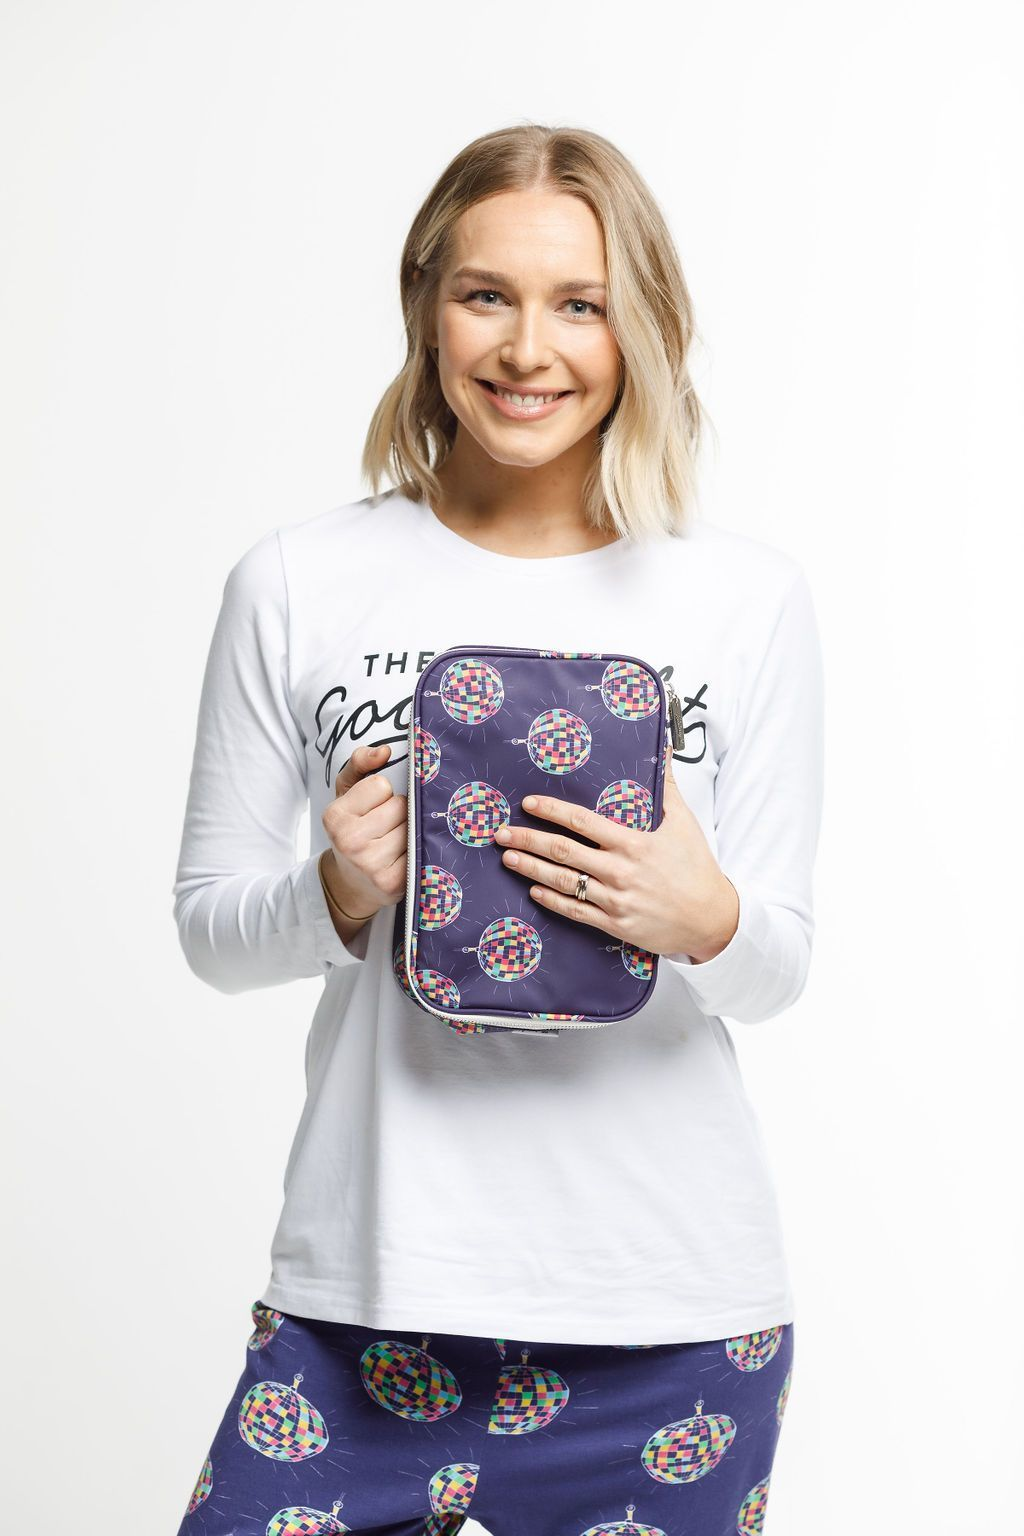 The Goodnight Society: Cosmetic Bag Large - Disco Ball Print